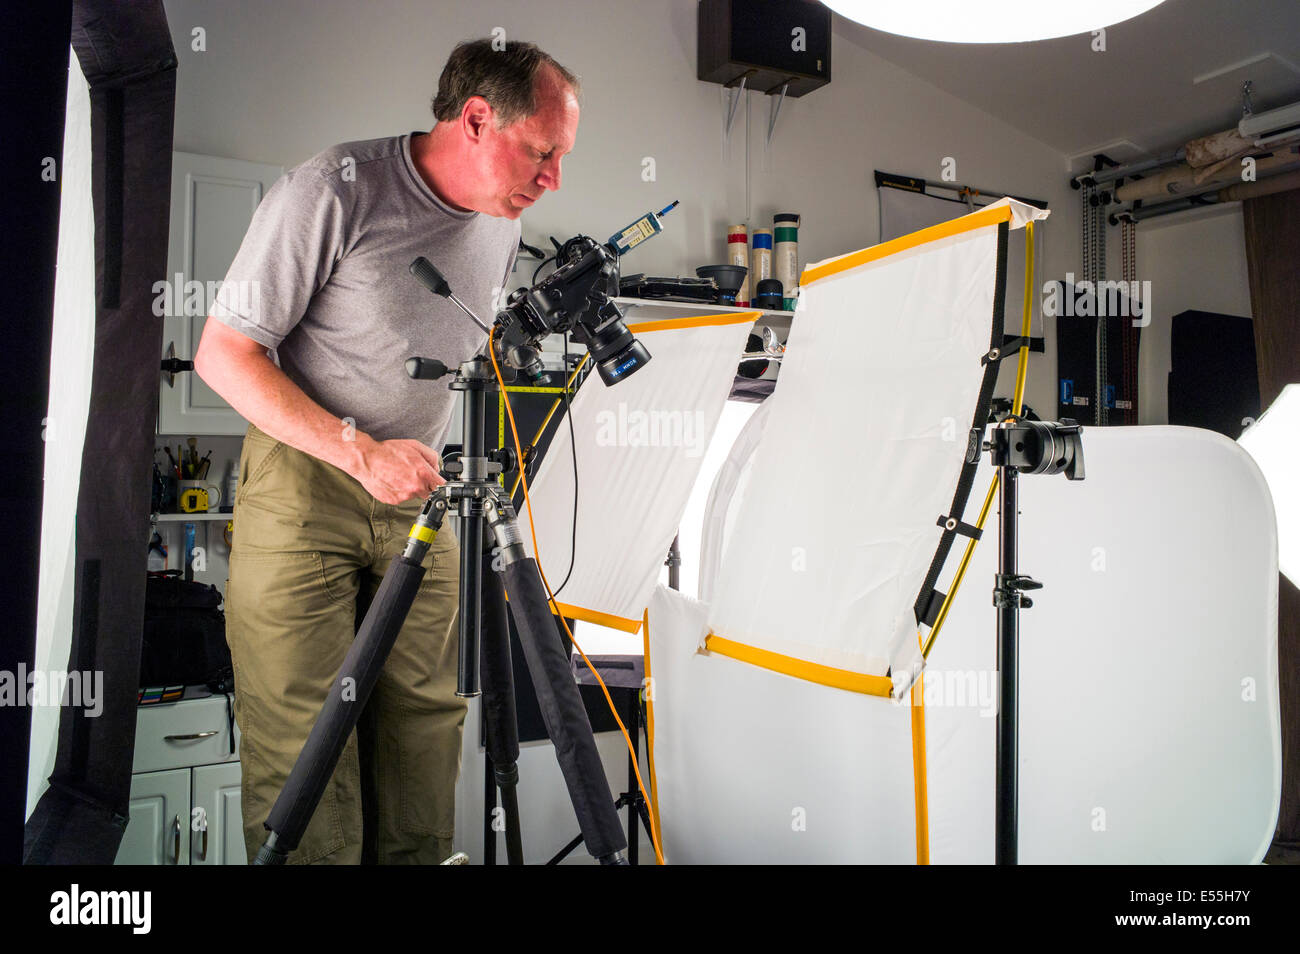 Photographer working on a commercial photography set, including lighting, background and grip gear. - Stock Image